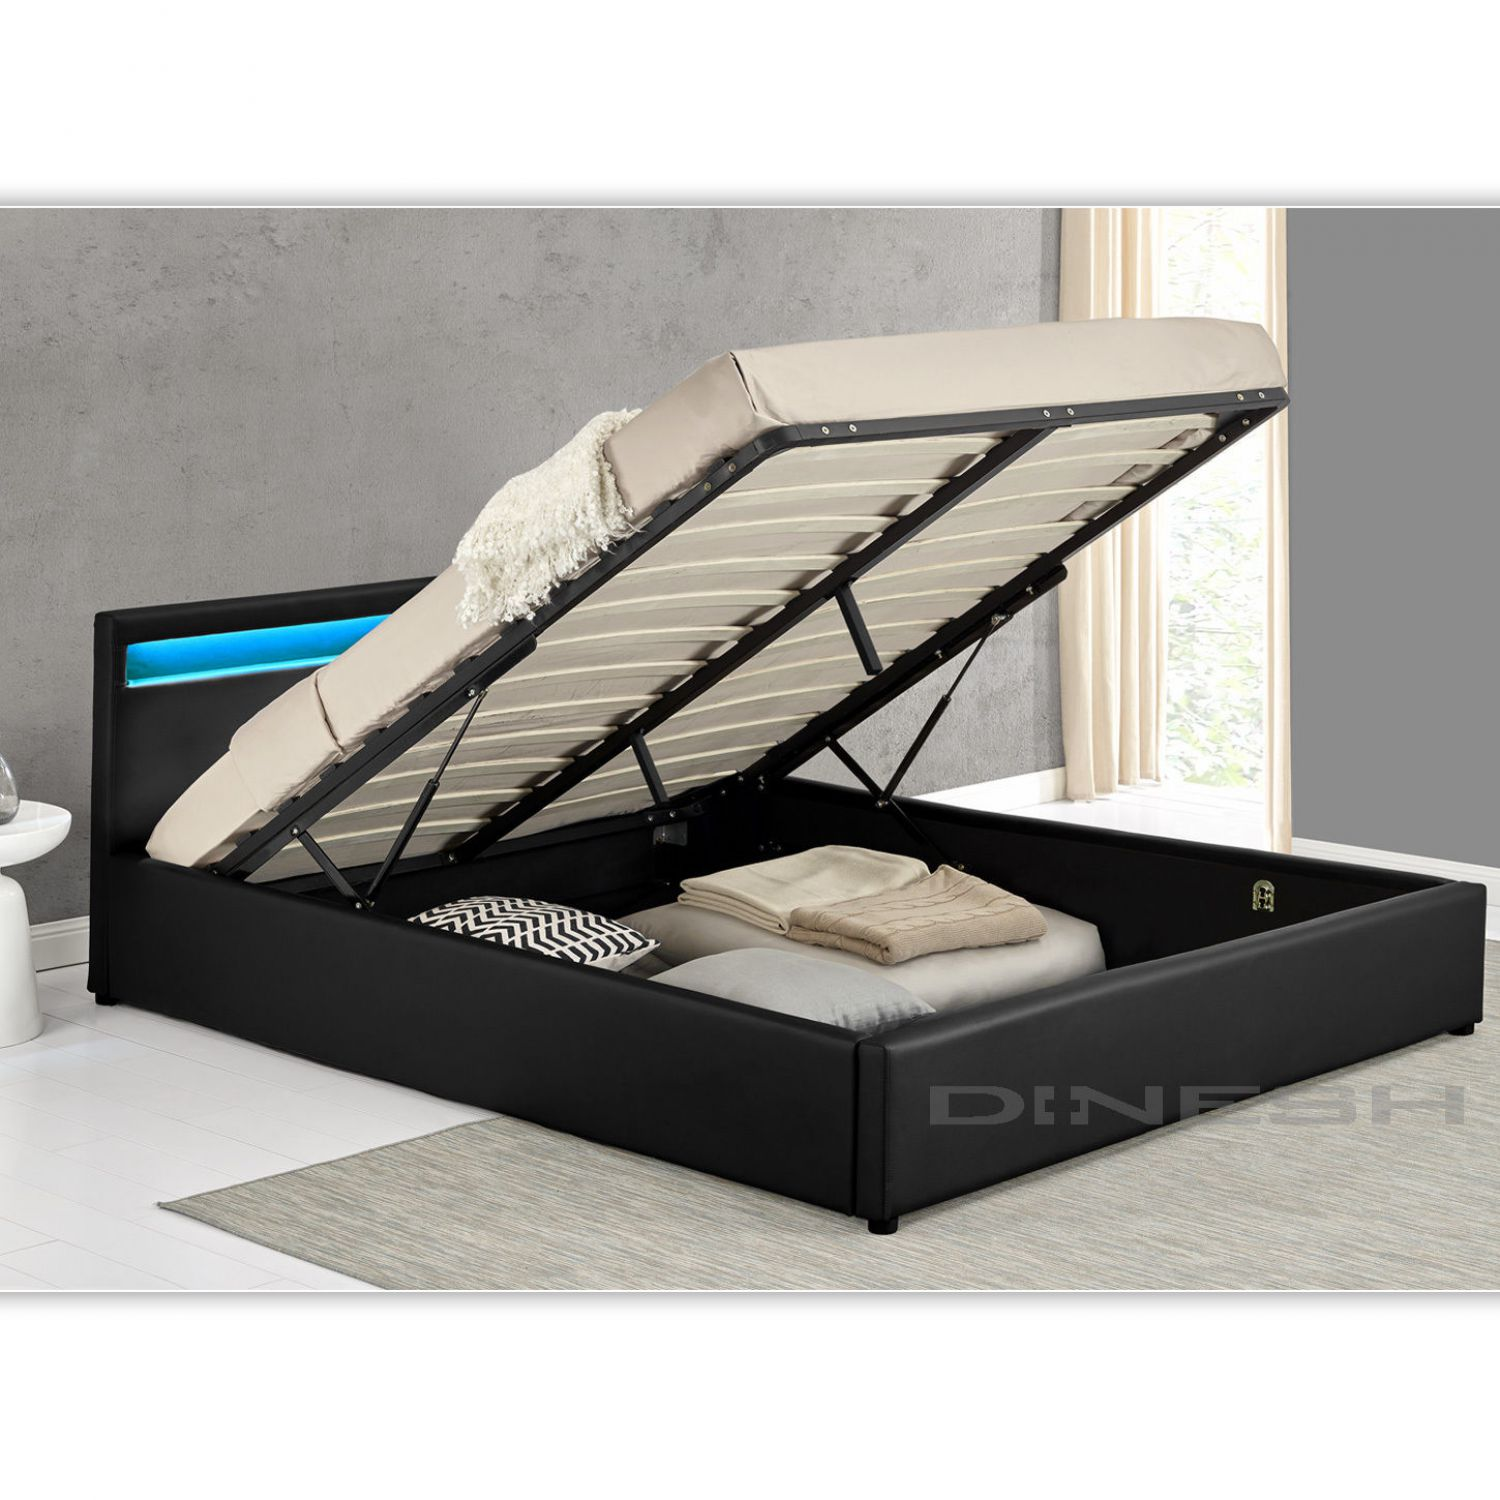 ohio schwarz led doppelbett polsterbett gasdruckfeder bett lattenrost kunstleder ebay. Black Bedroom Furniture Sets. Home Design Ideas